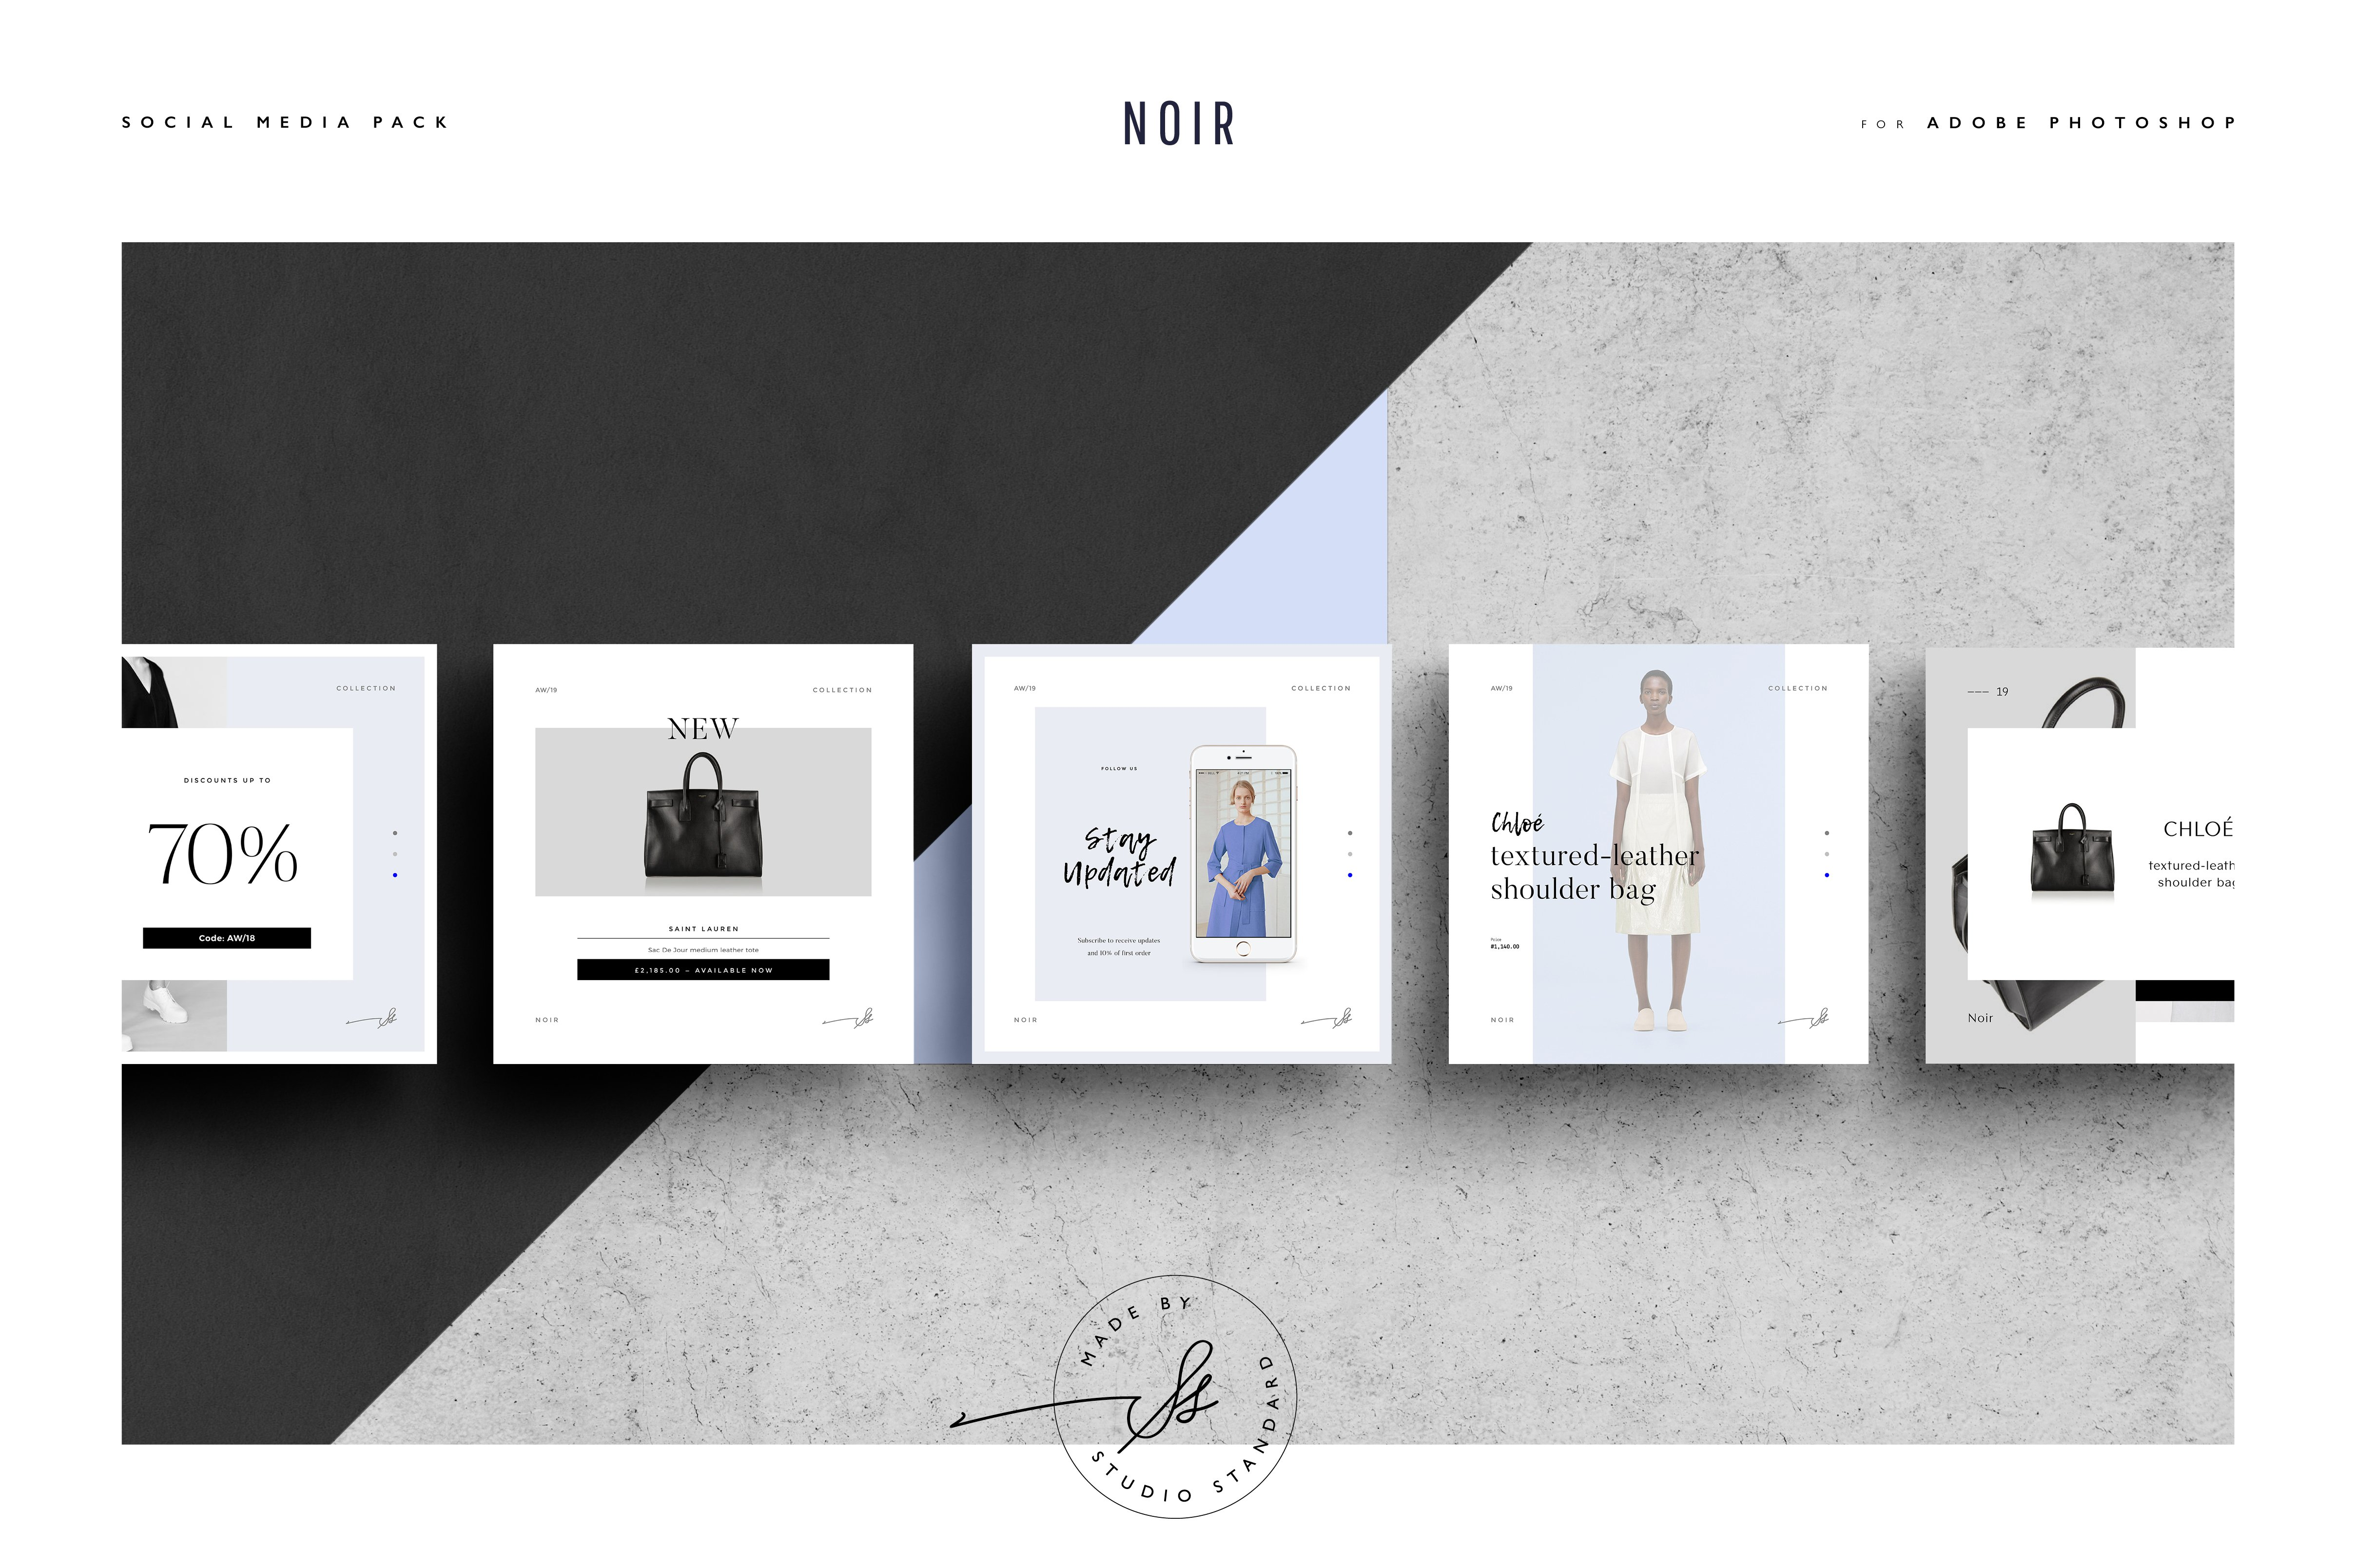 Noir social media pack instagram templates creative market fandeluxe Choice Image